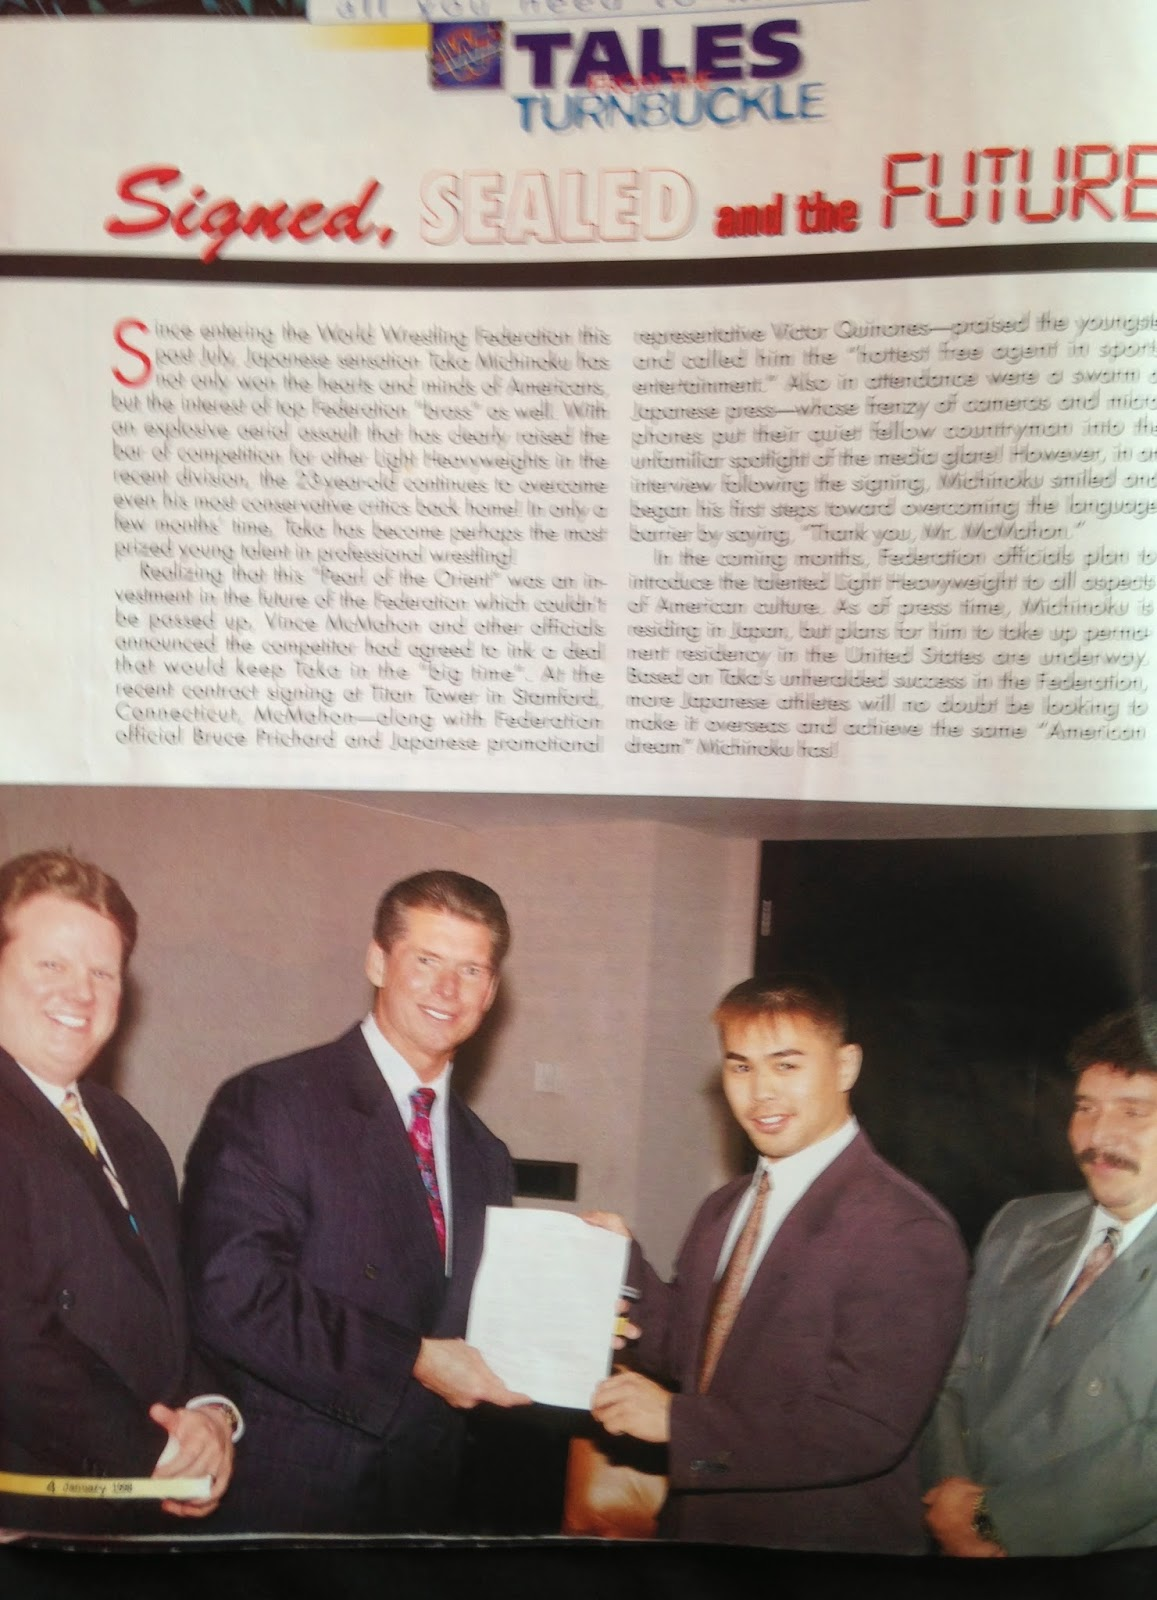 WWF MAGAZINE - JANUARY 1998 - Taka Michinoku signs with the World Wrestling Federation